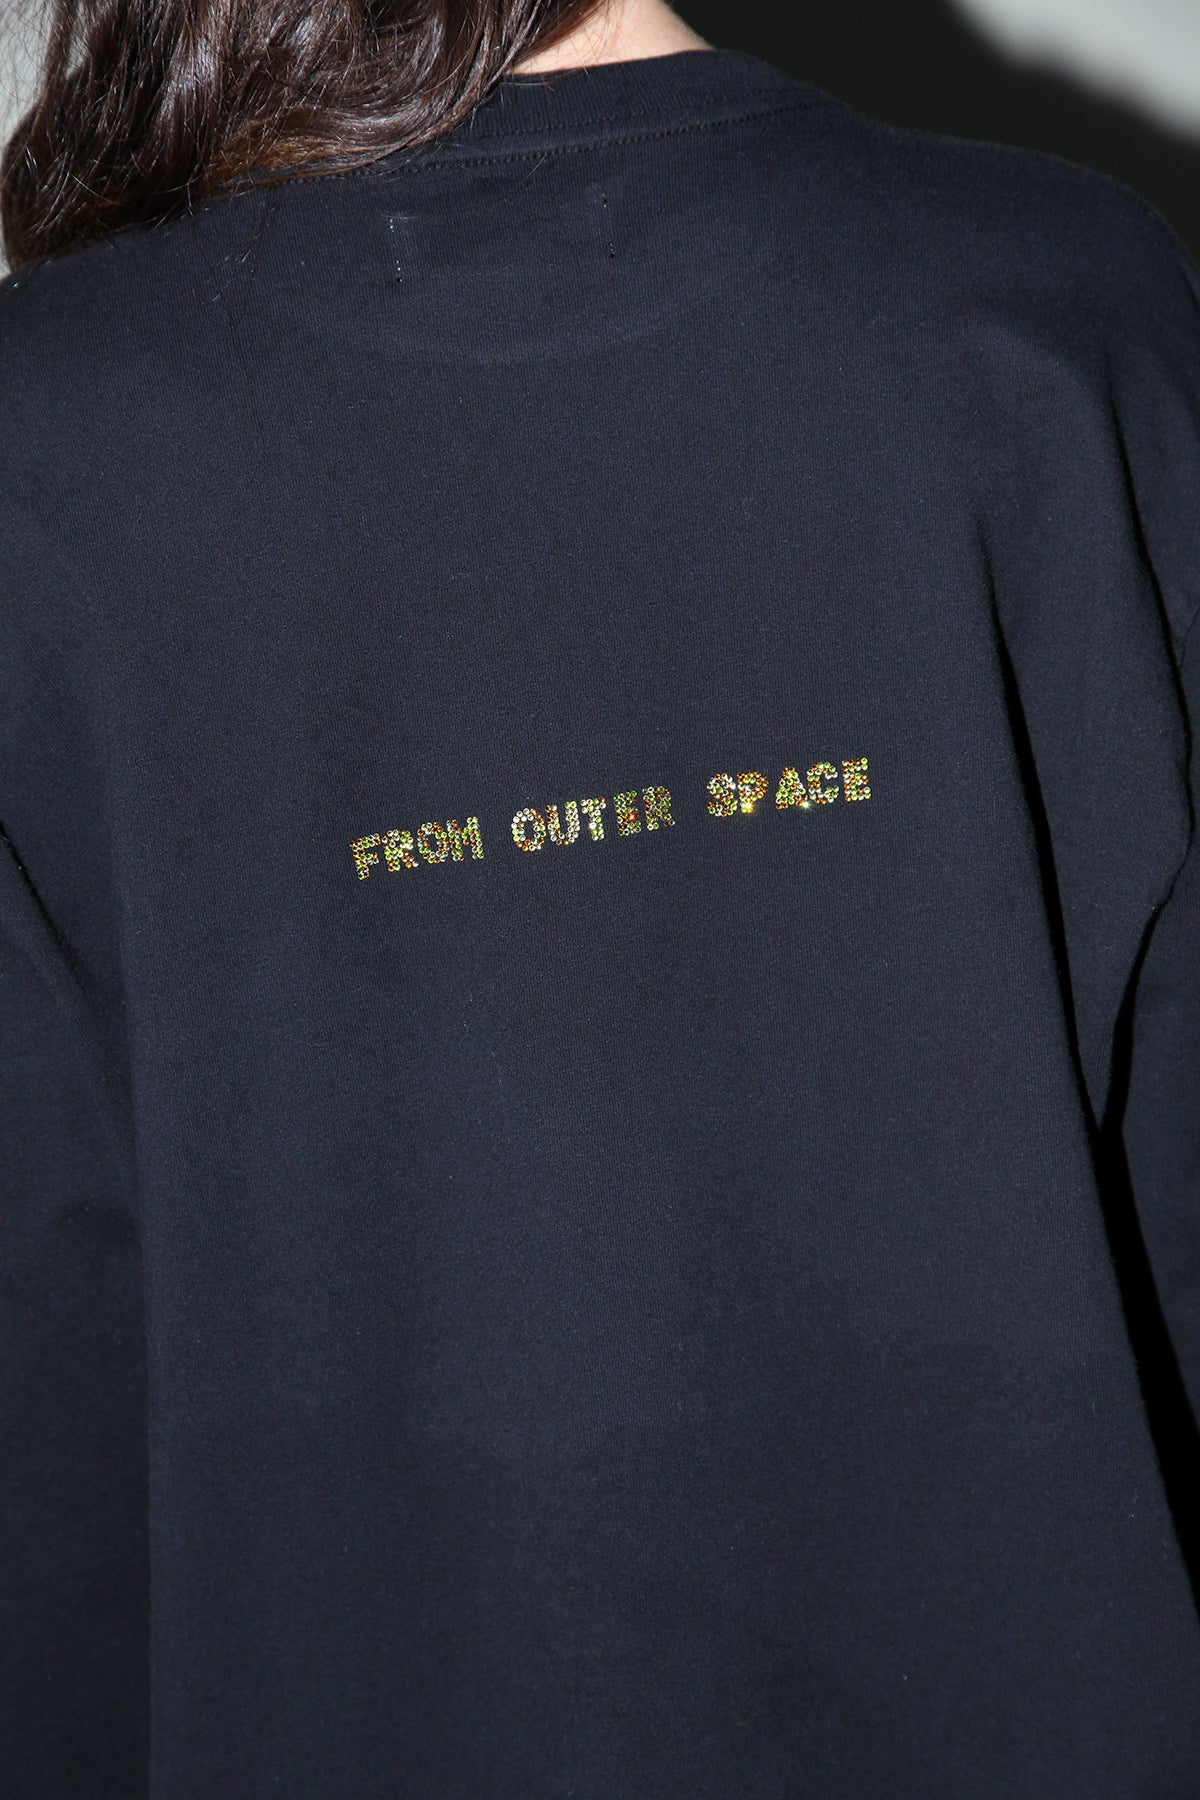 Rhinestone 'From Outer Space' Tee in Black